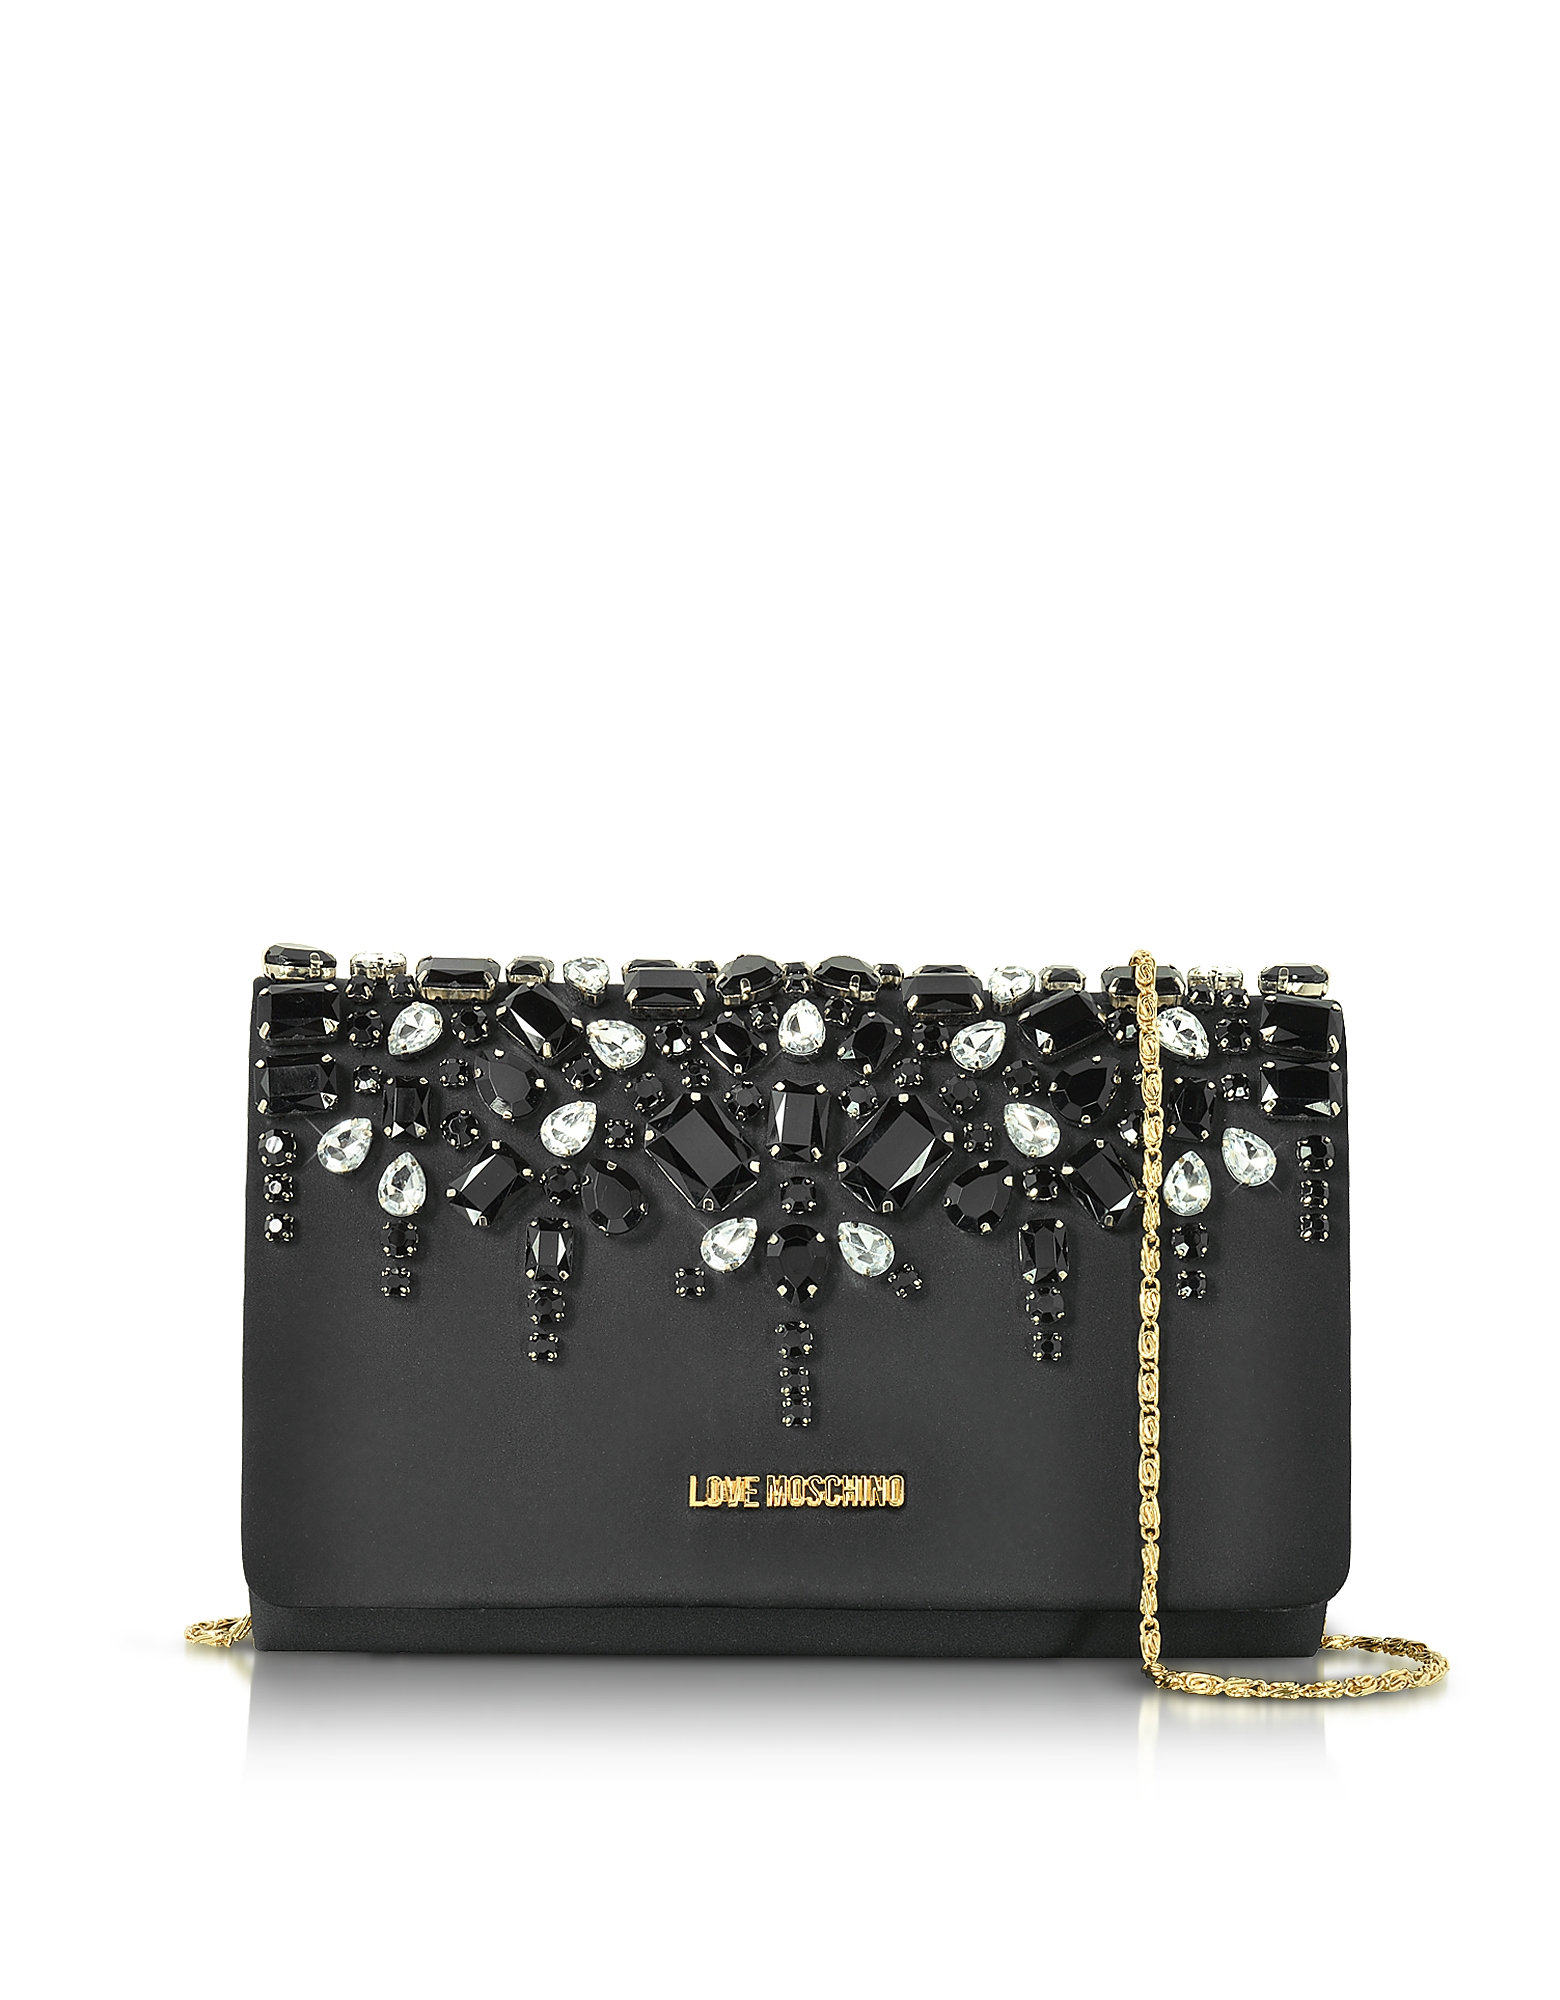 Love Moschino Handbags, Satin and Crystals Evening Clutch w/Chain